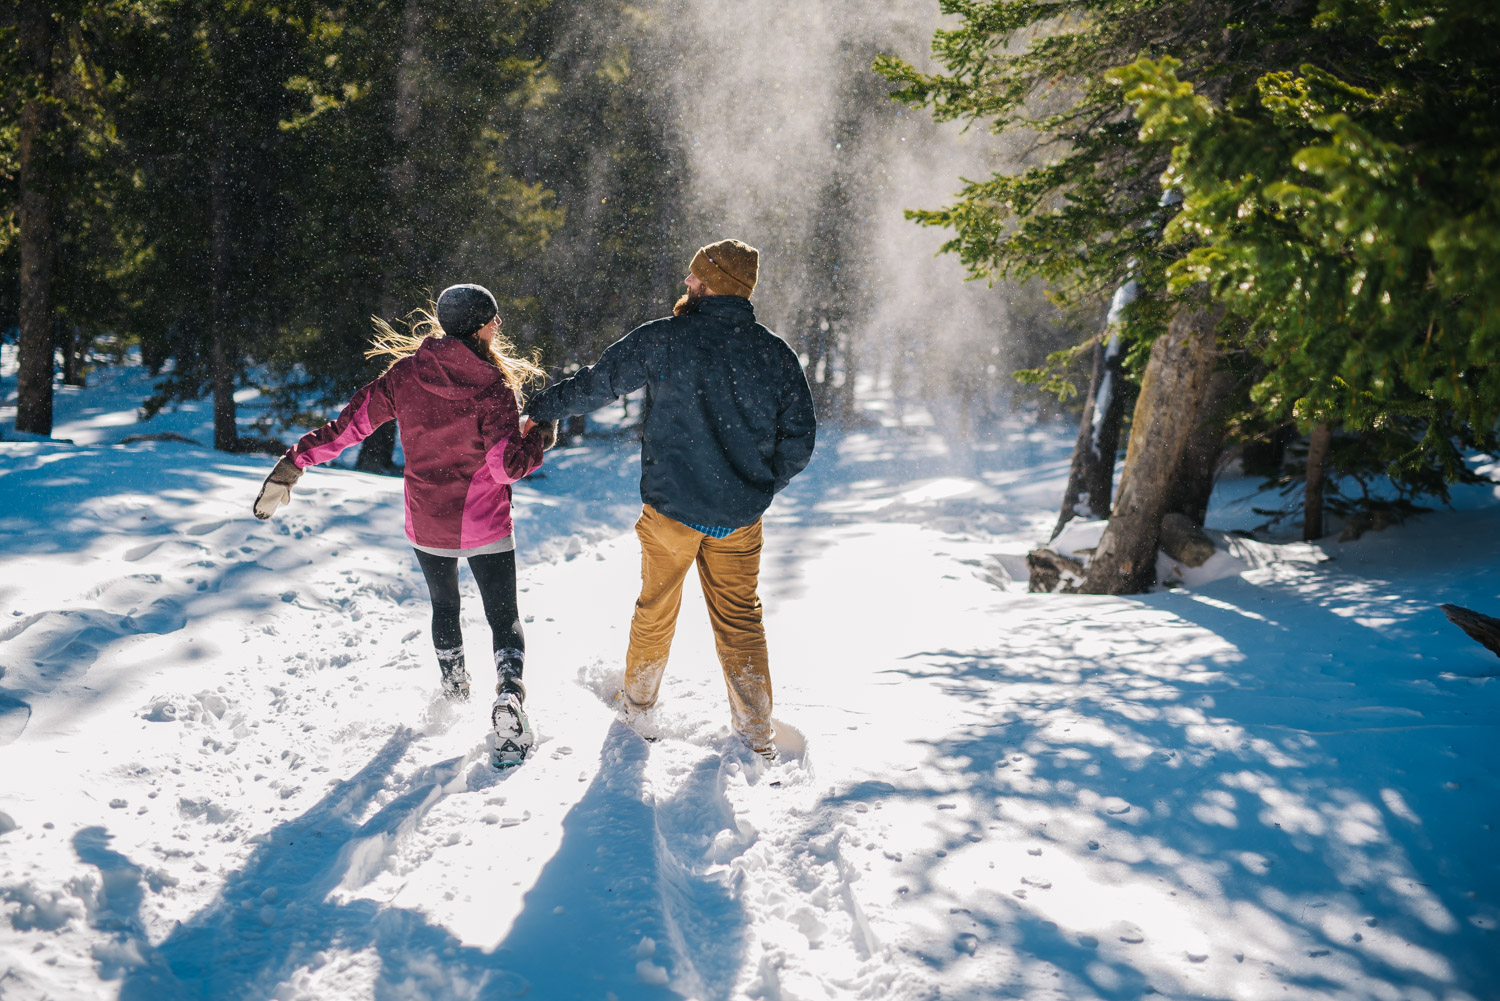 Epic snowshoeing engagement session for adventurous couples. Winter in the Colorado Mountains is harsh but beautiful. St. Mary's Glacier Engagement session by Maddie Mae Photography